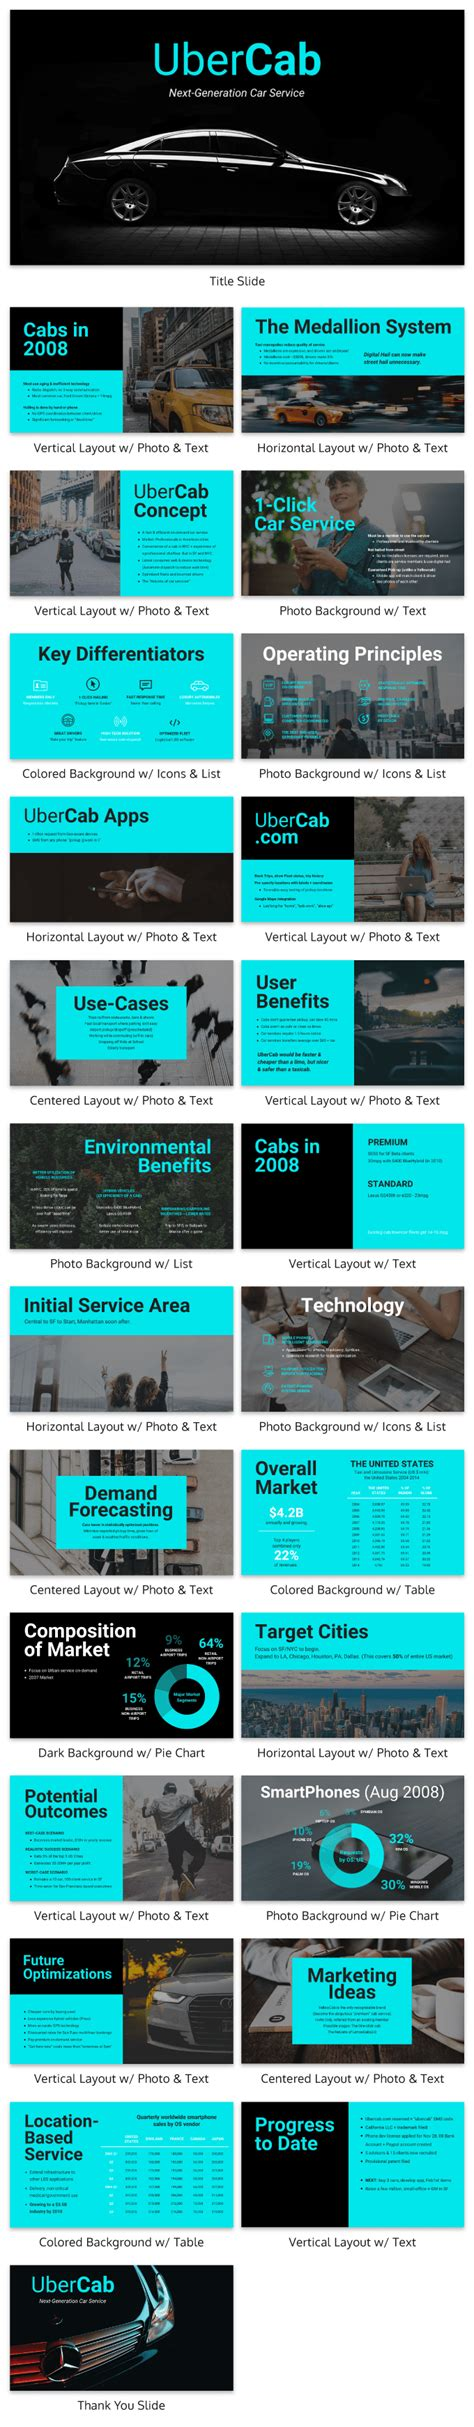 12 business pitch deck templates and design best practices to impress investors venngage